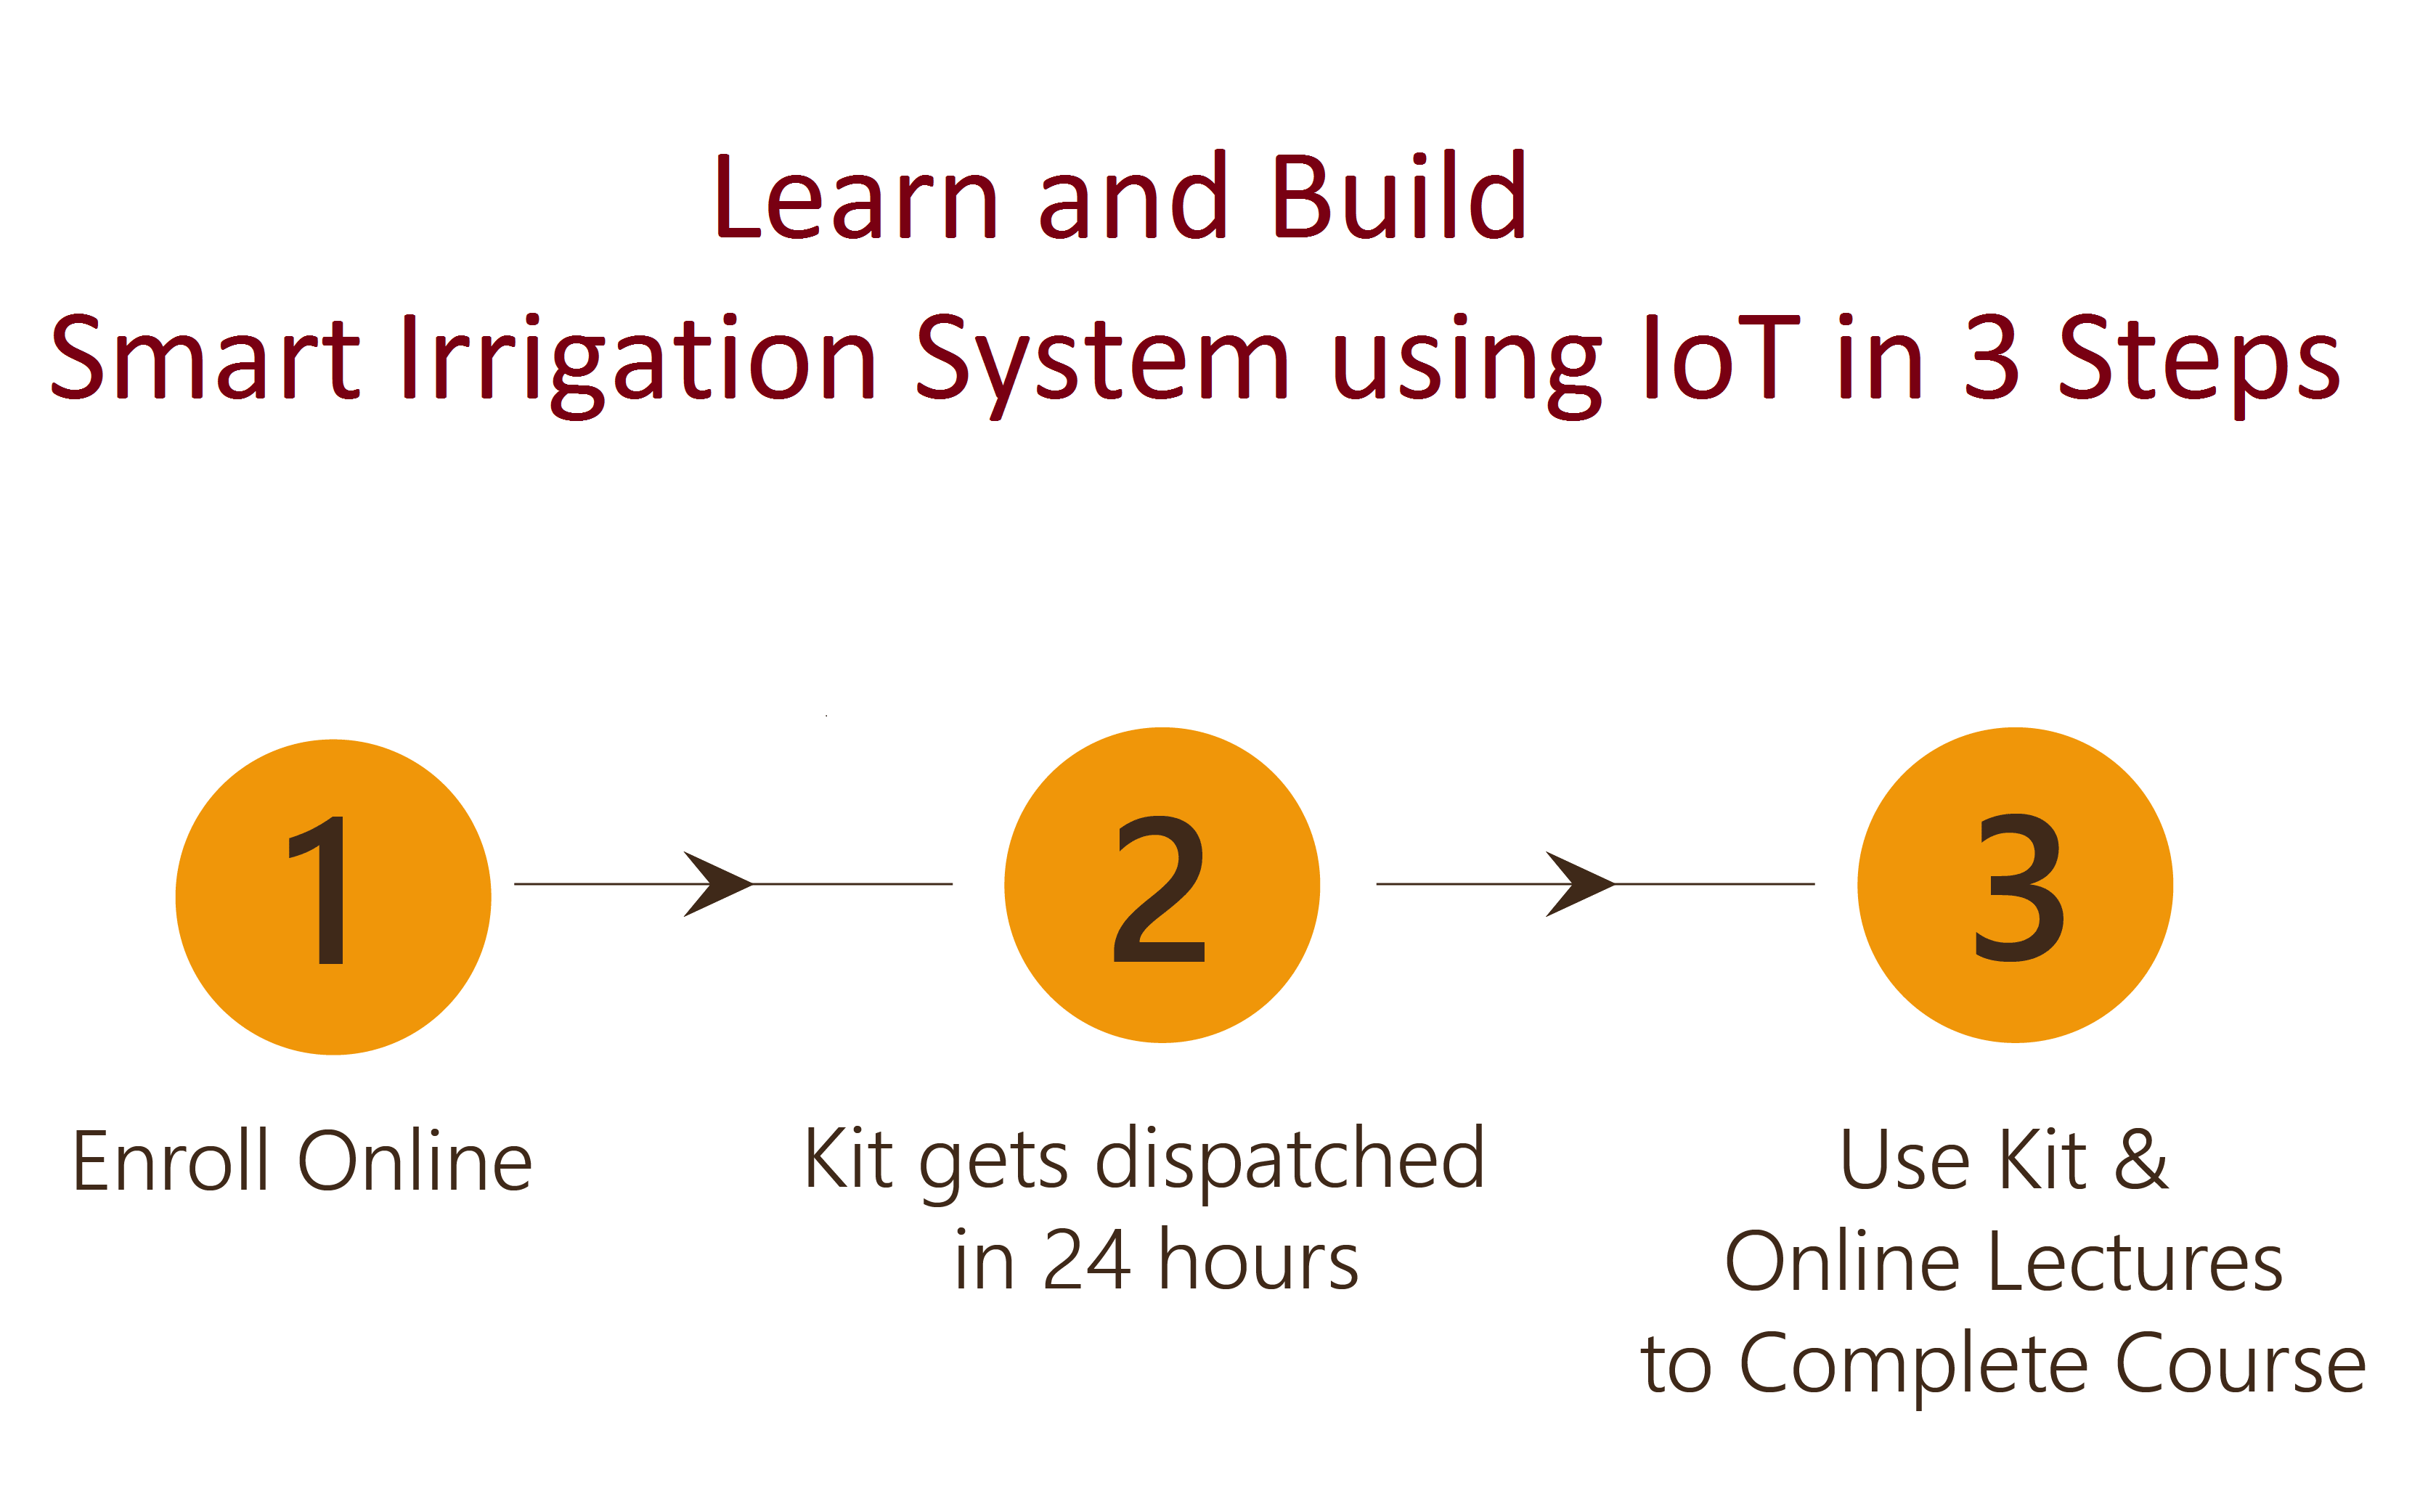 Design and Build Smart Irrigation System using IoT Project in 3 Steps